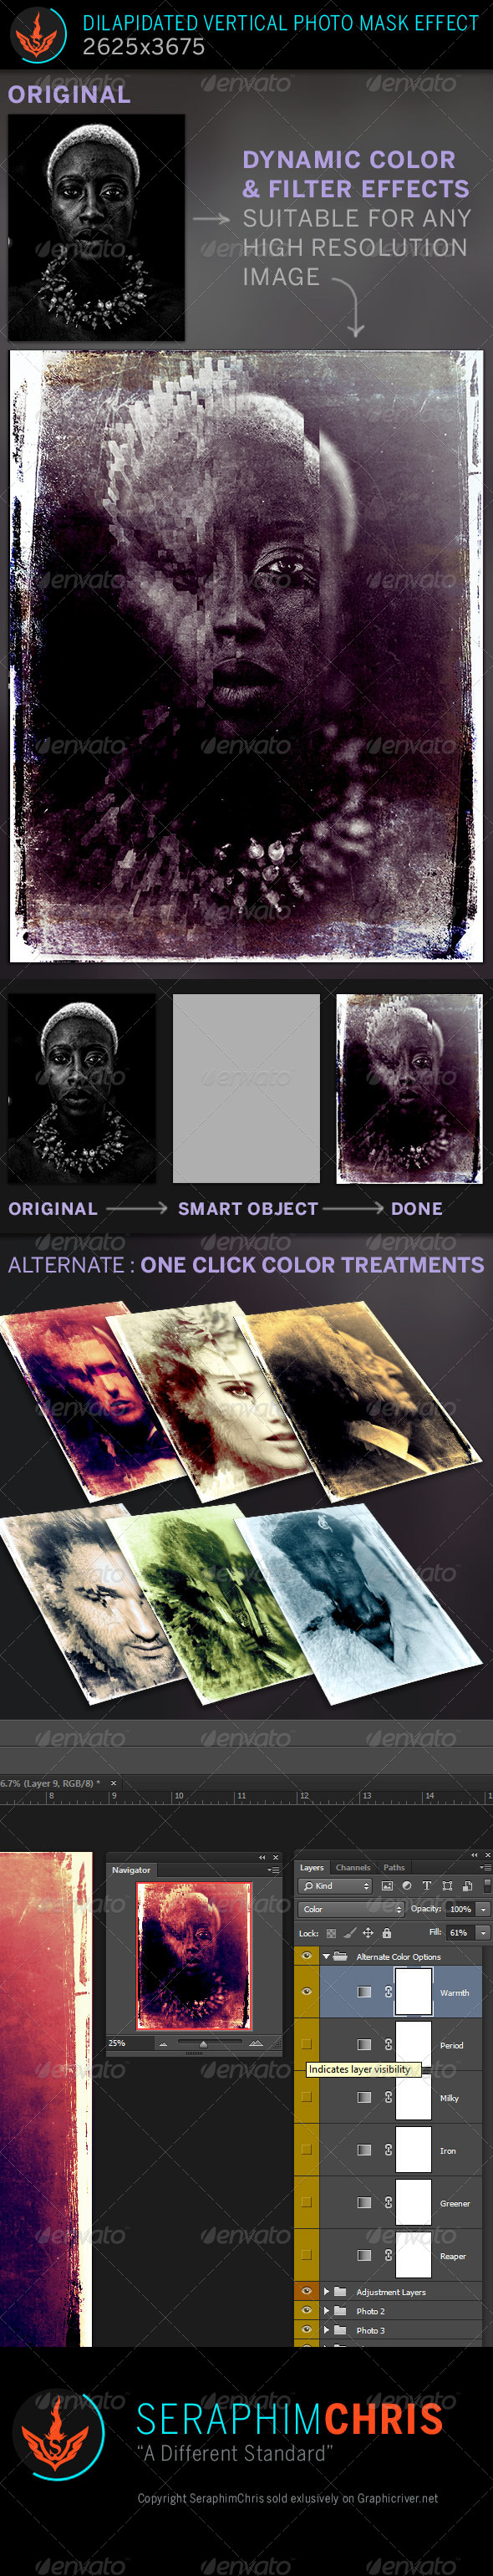 GraphicRiver Dilapidated Vertical Mask Photo Effect Template 7814450